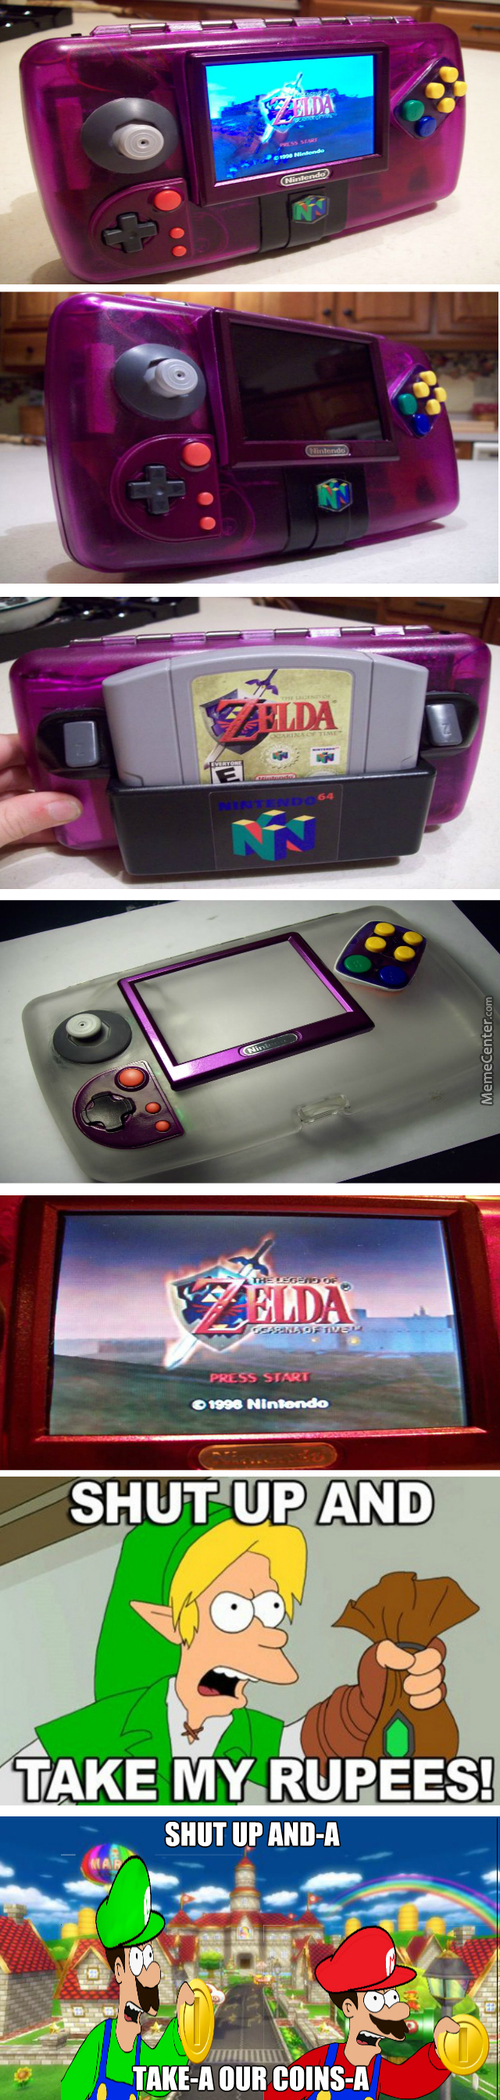 Grape 64, A Portable Nintendo 64